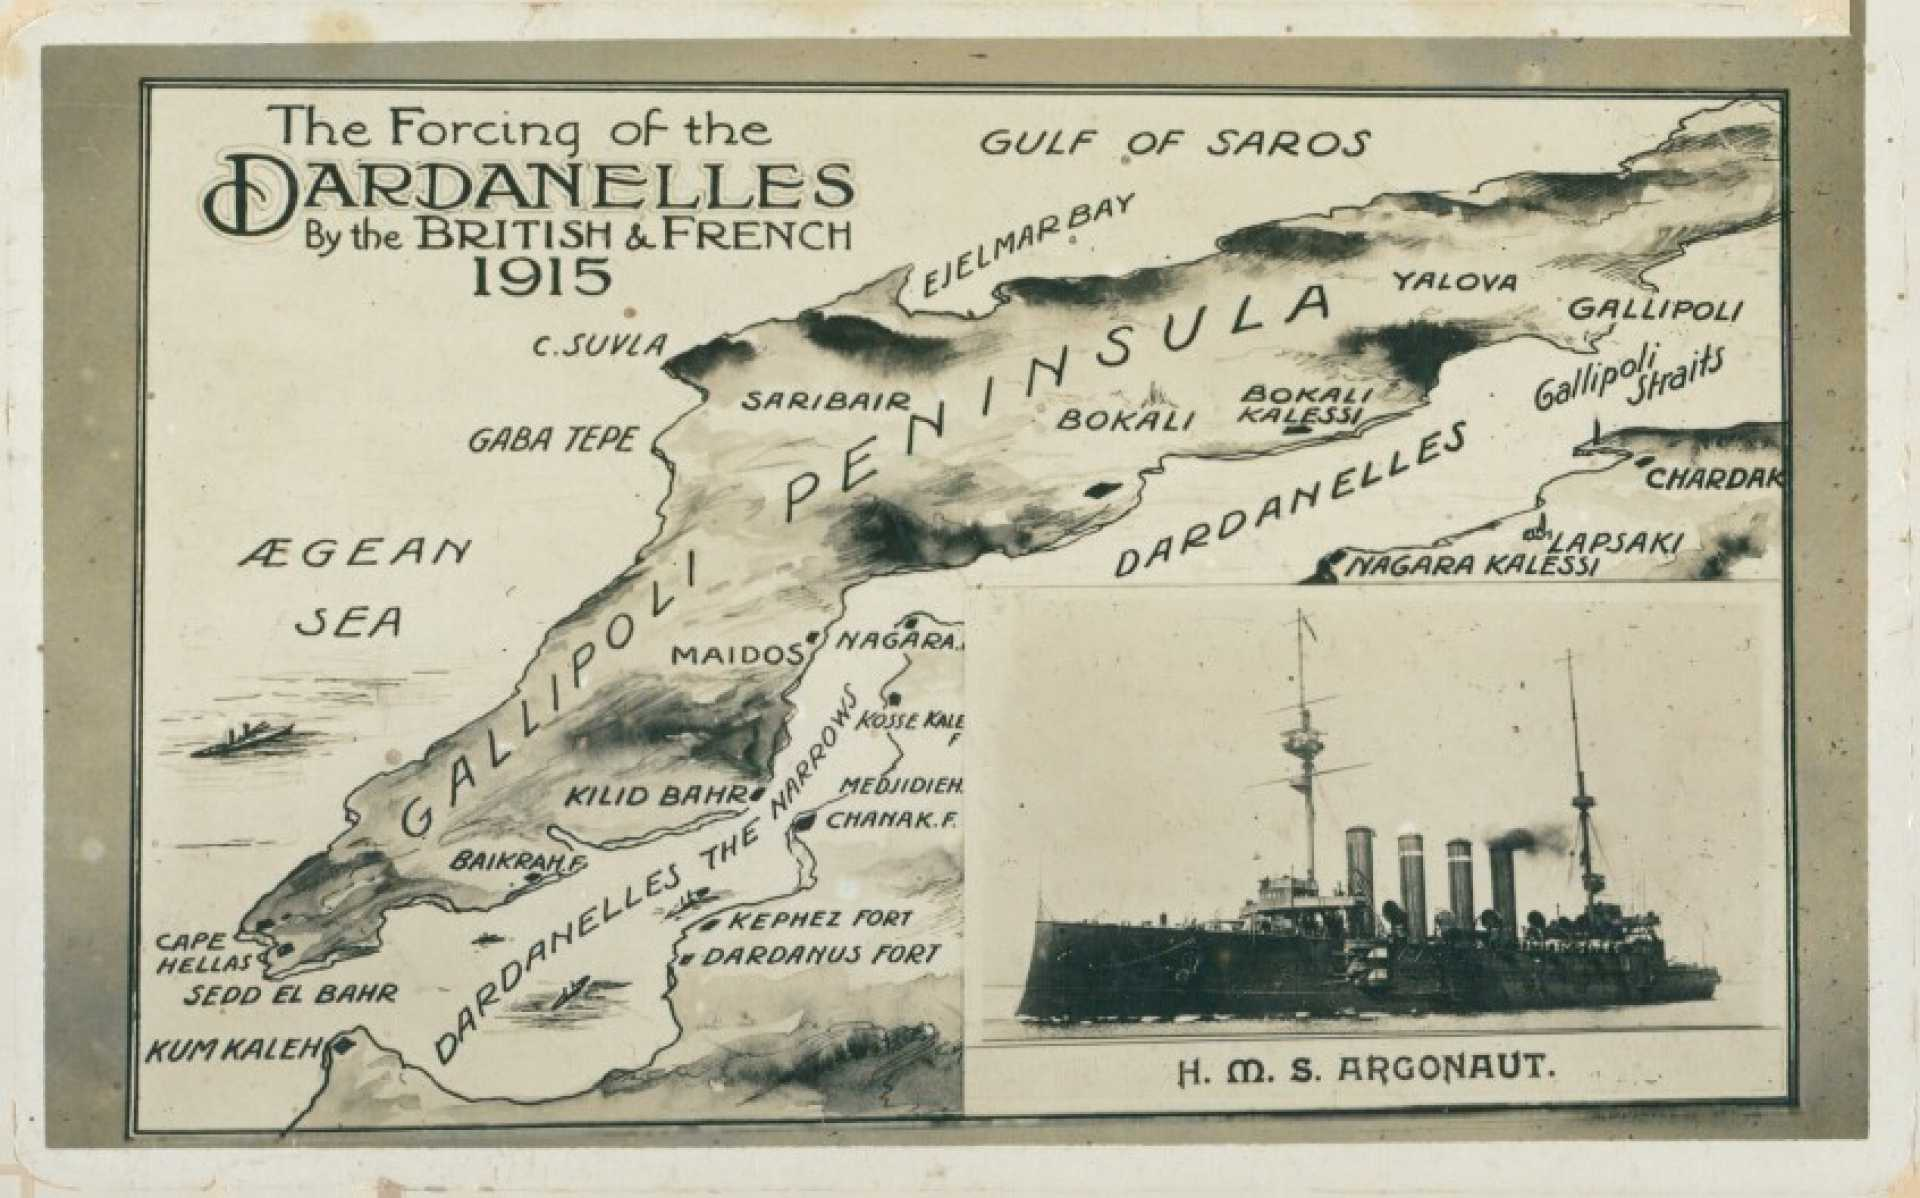 The forcing of the Dardanelles by the British & French 1915